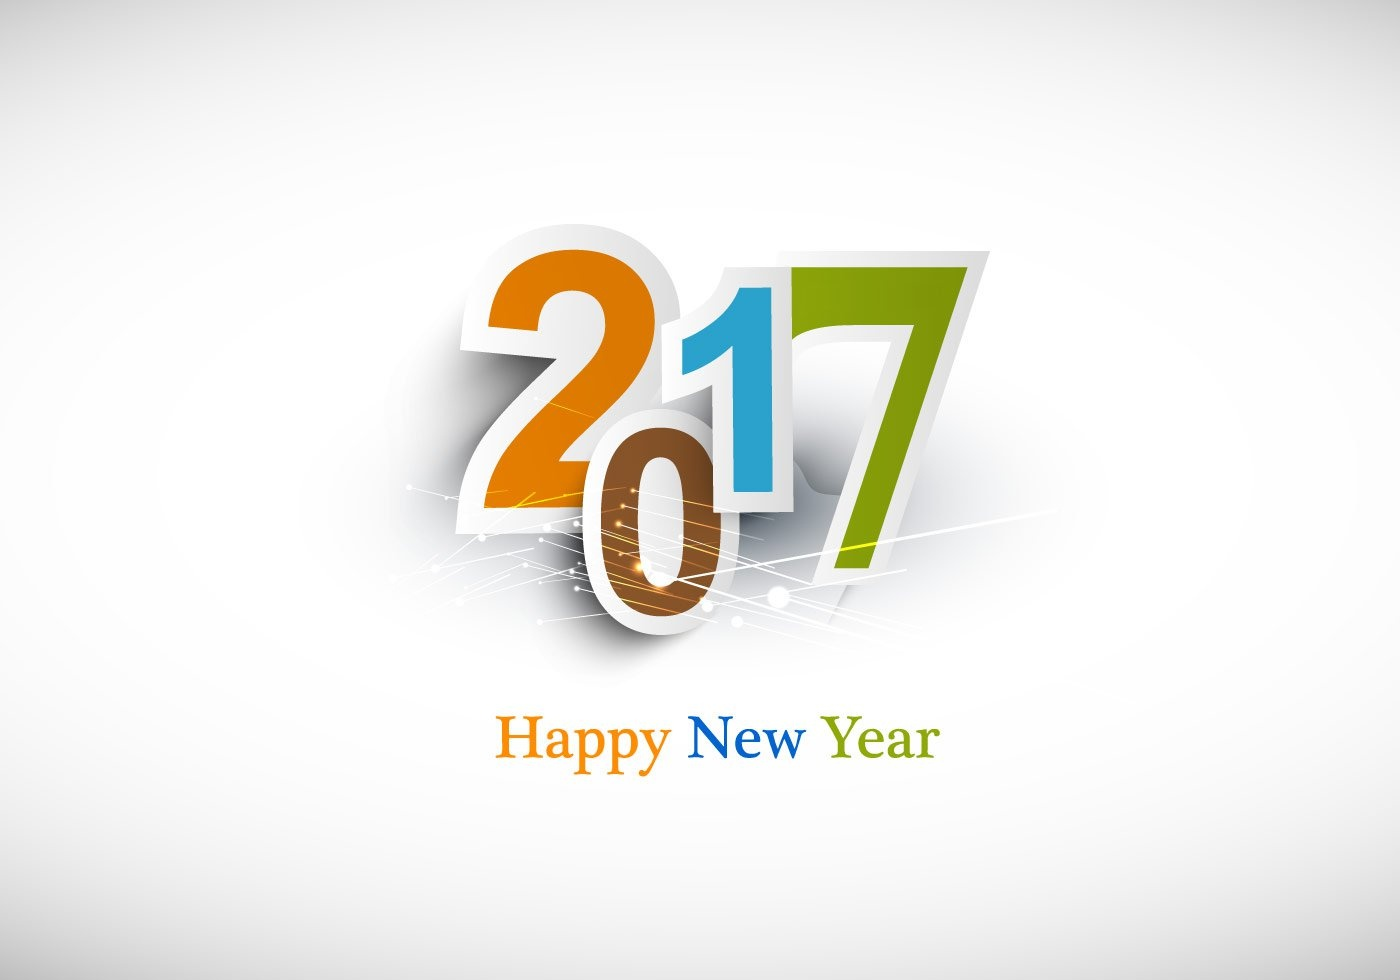 High Resolution New Year 2017 images